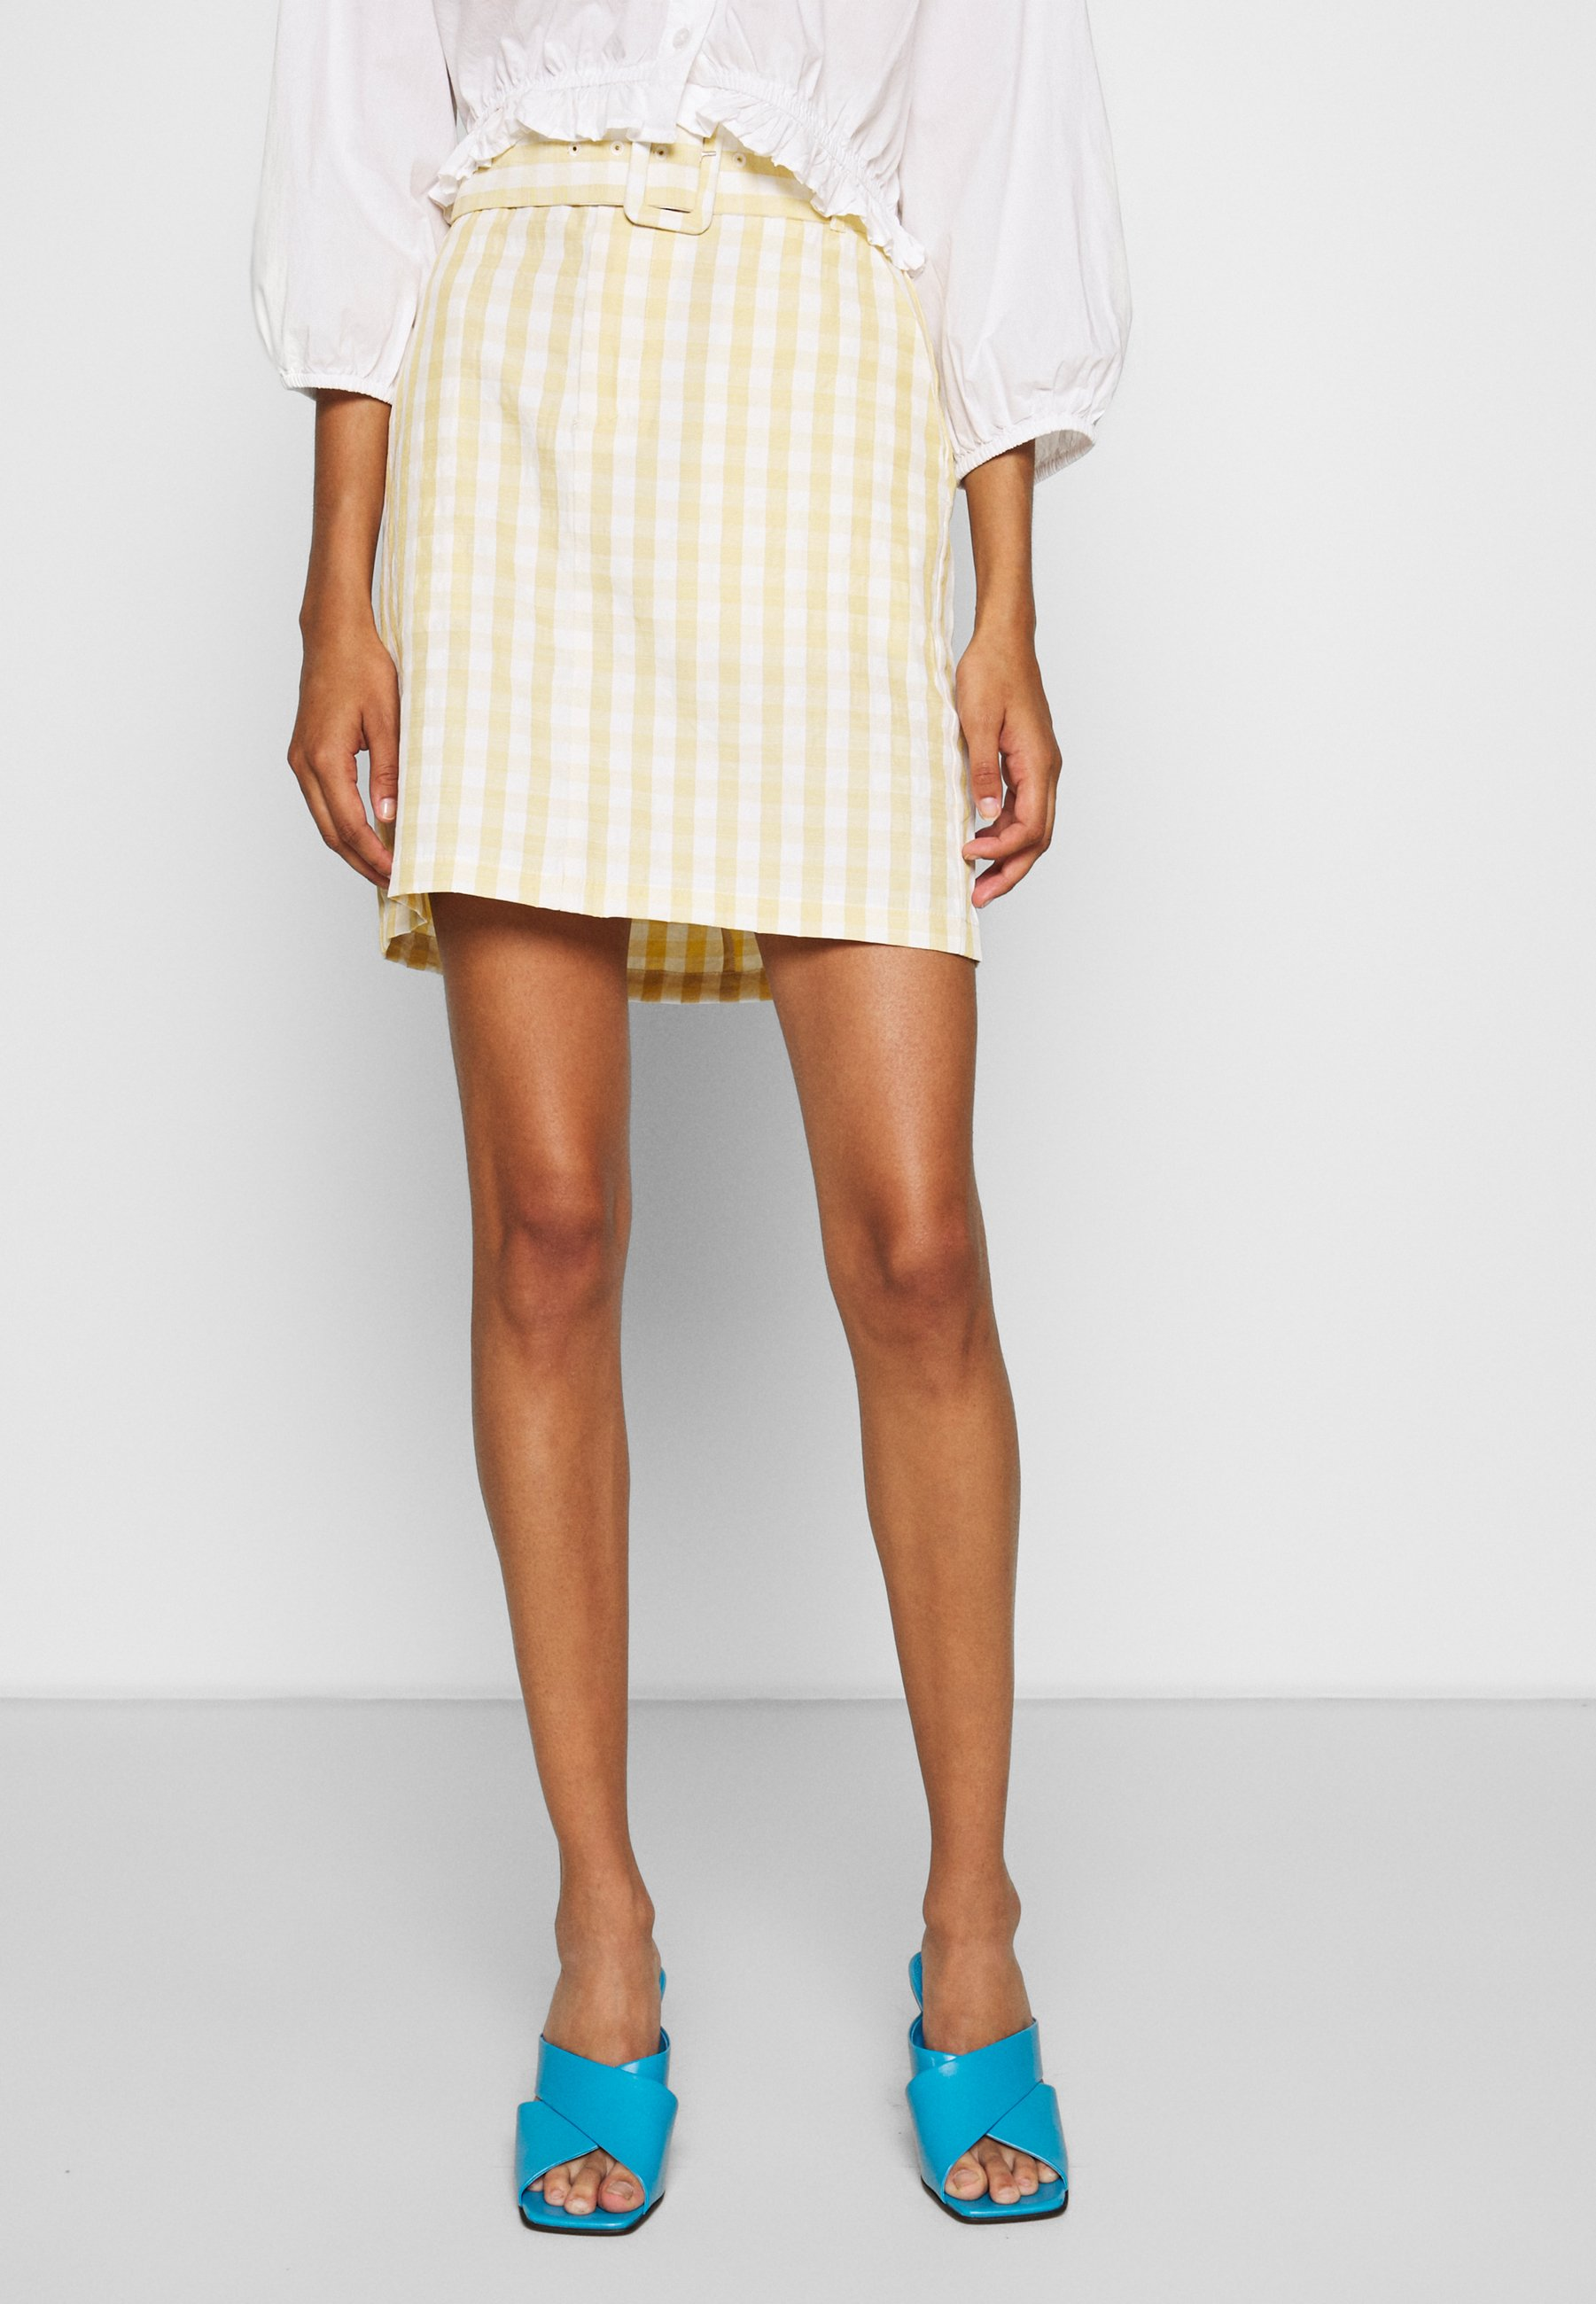 Minimum NOVARA SKIRT - Jupe trapèze - yellow - Jupes femme QQXdQ